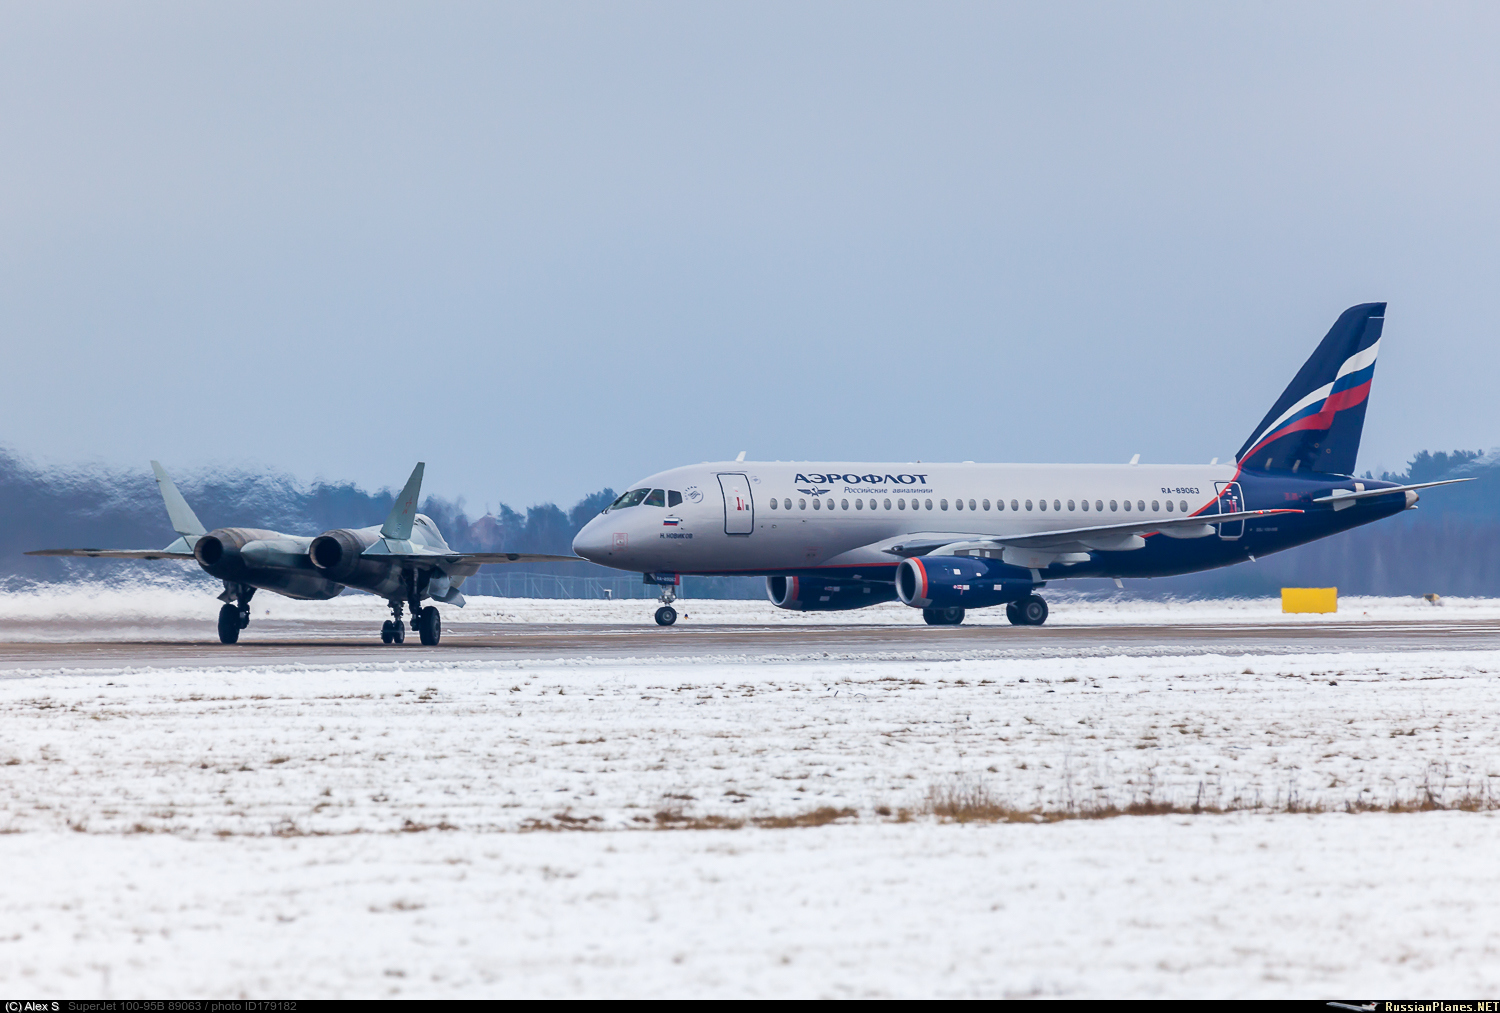 http://russianplanes.net/images/to180000/179182.jpg